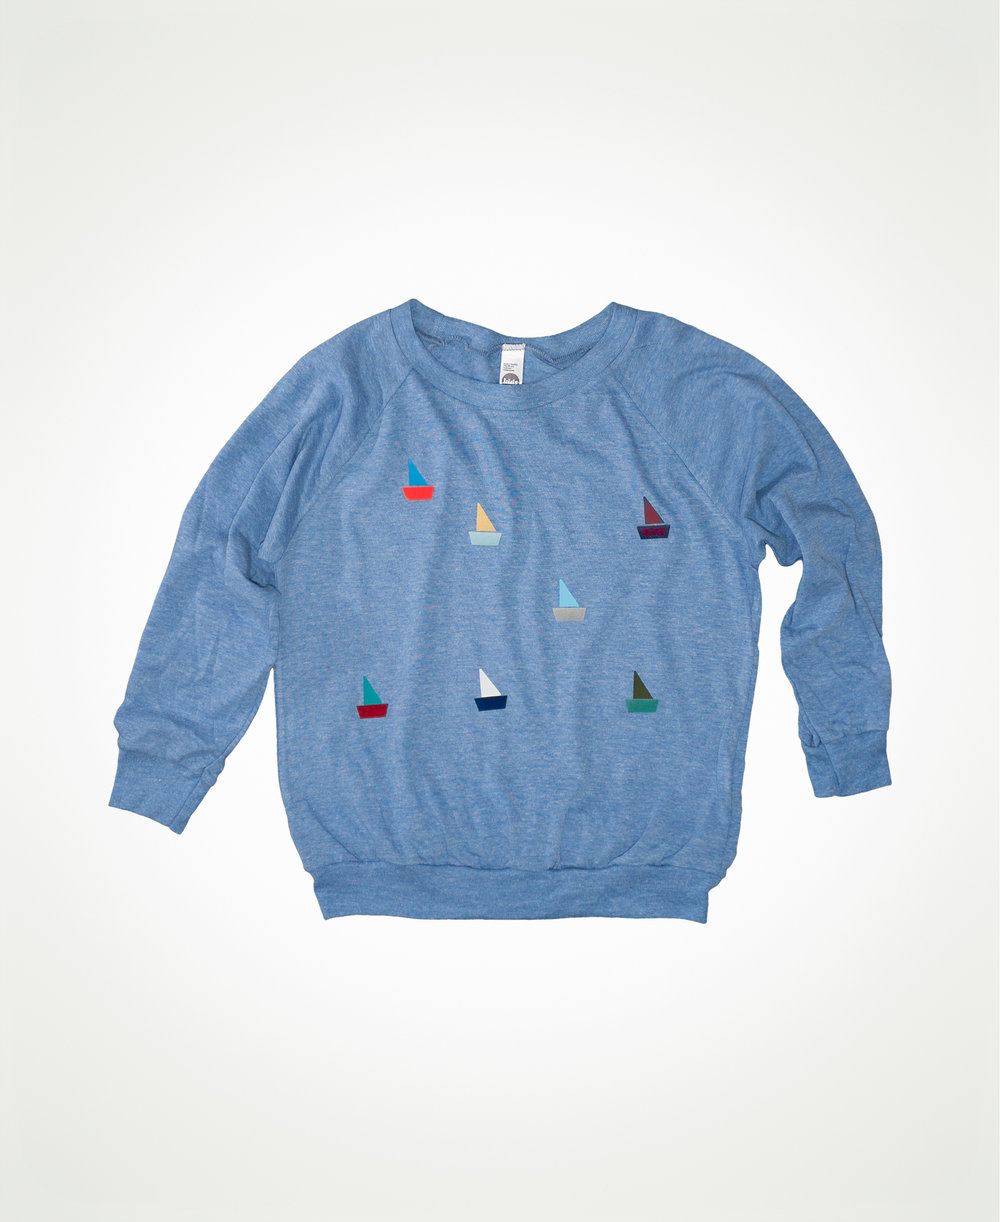 bootjes-kids-lightweight--sweater-heather-blue.jpg